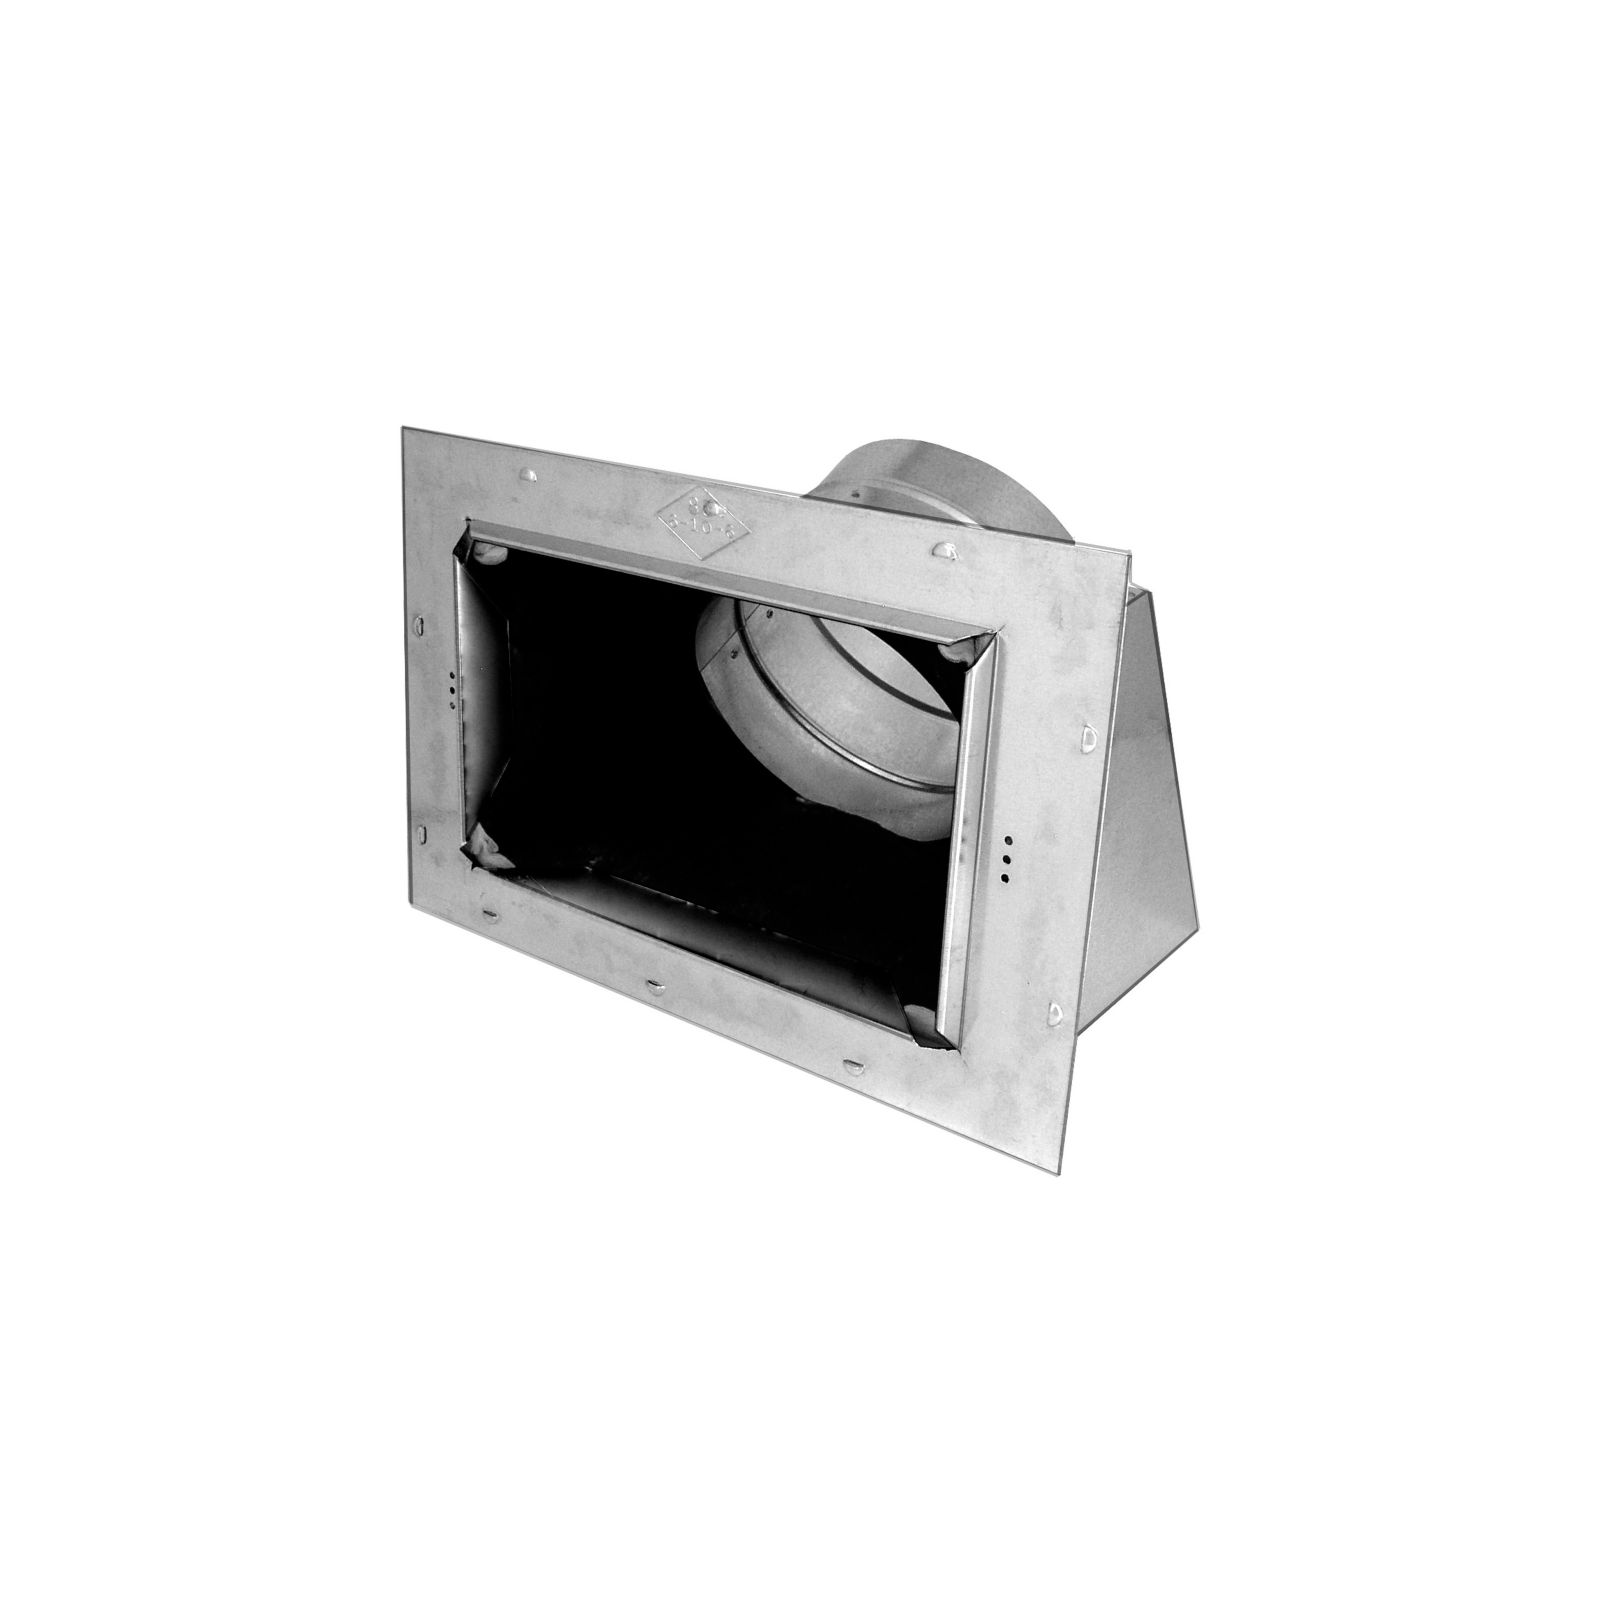 "Southwark 86R84106 - Insulated Ceiling Box Slant Top with Flange and Outlet, 4"" X 10"" X 6"""